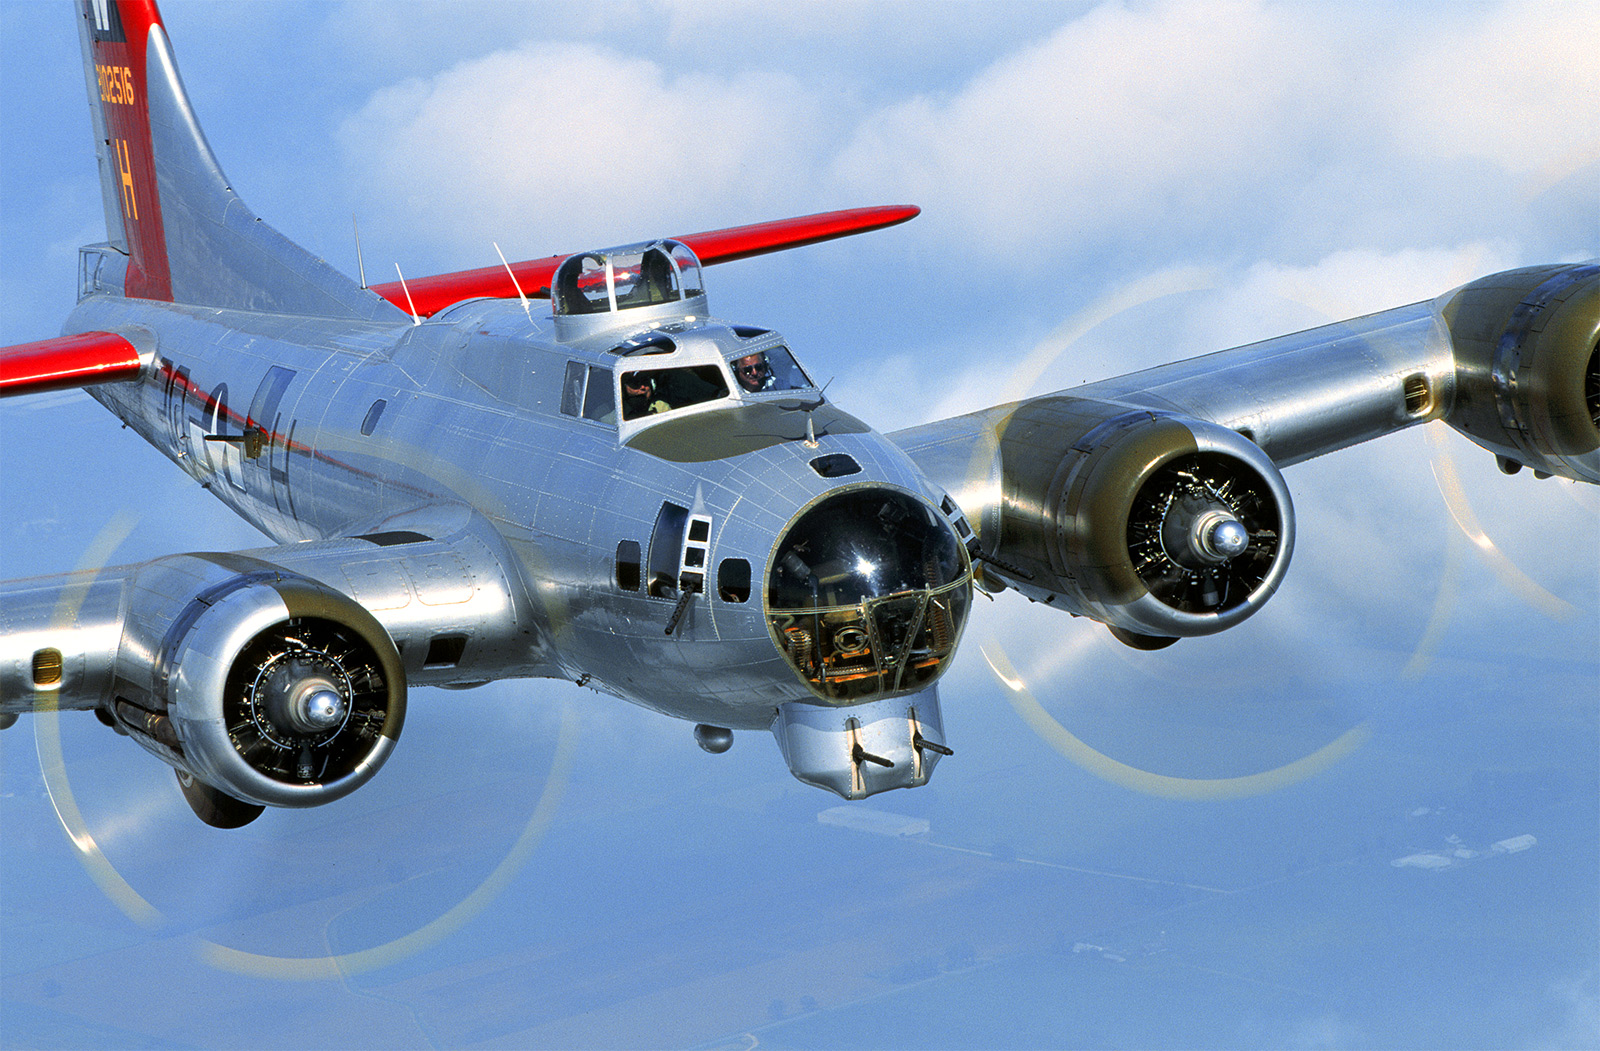 Aluminum Overcast: B-17 flight at Lawrenceville, GA, Oct 2014